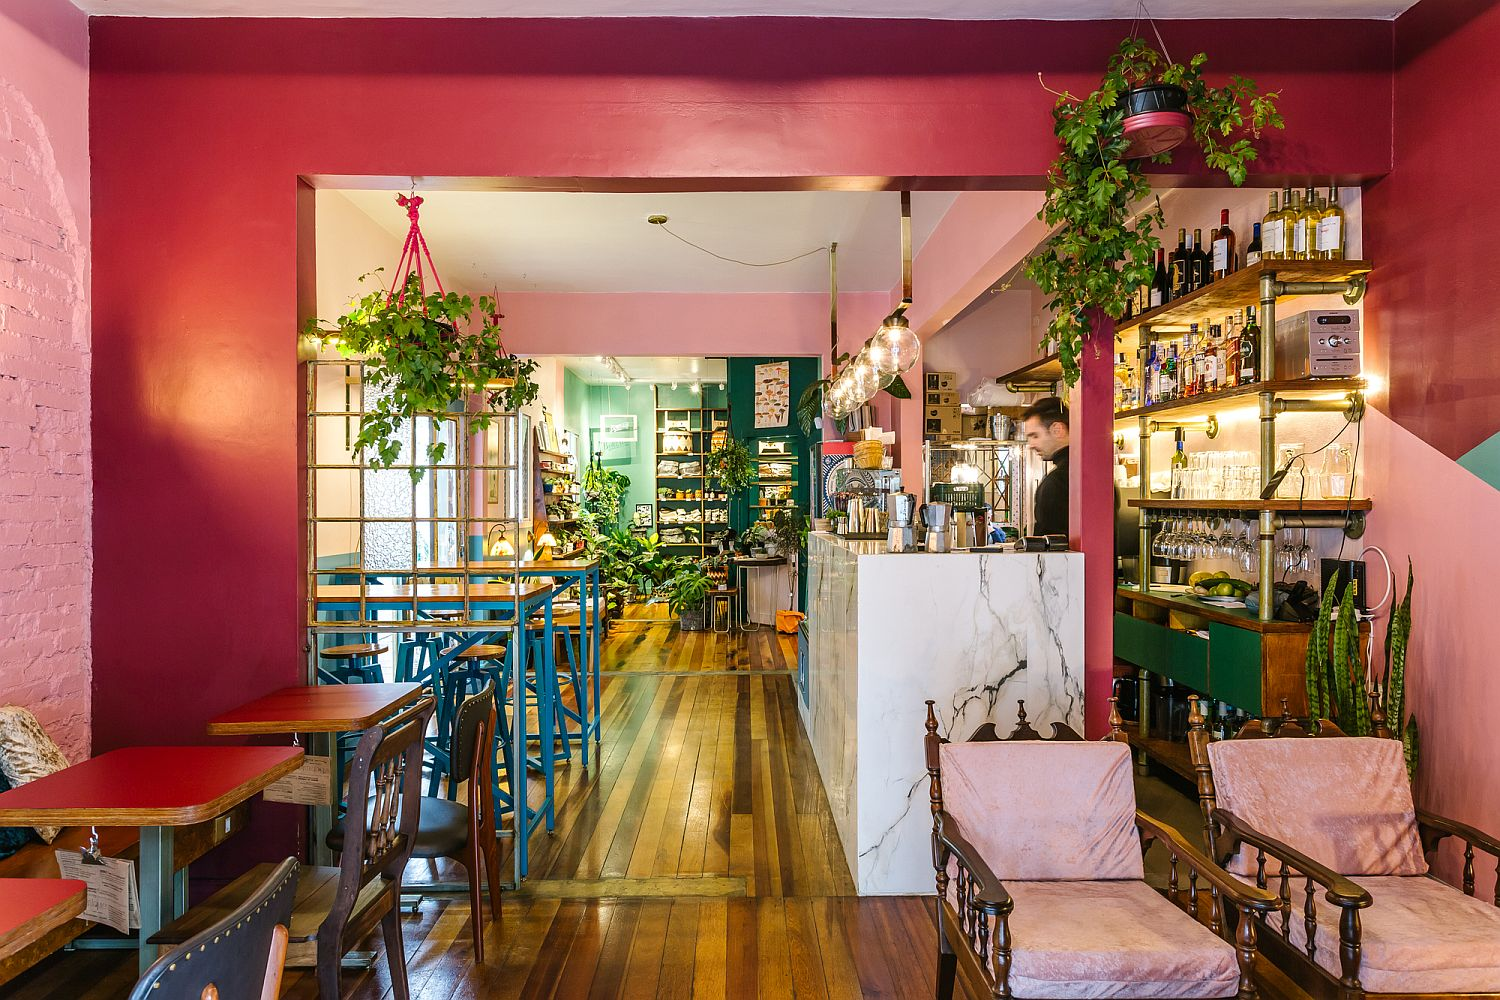 Gorgeous new interior of Botanique with greenery and bright colors